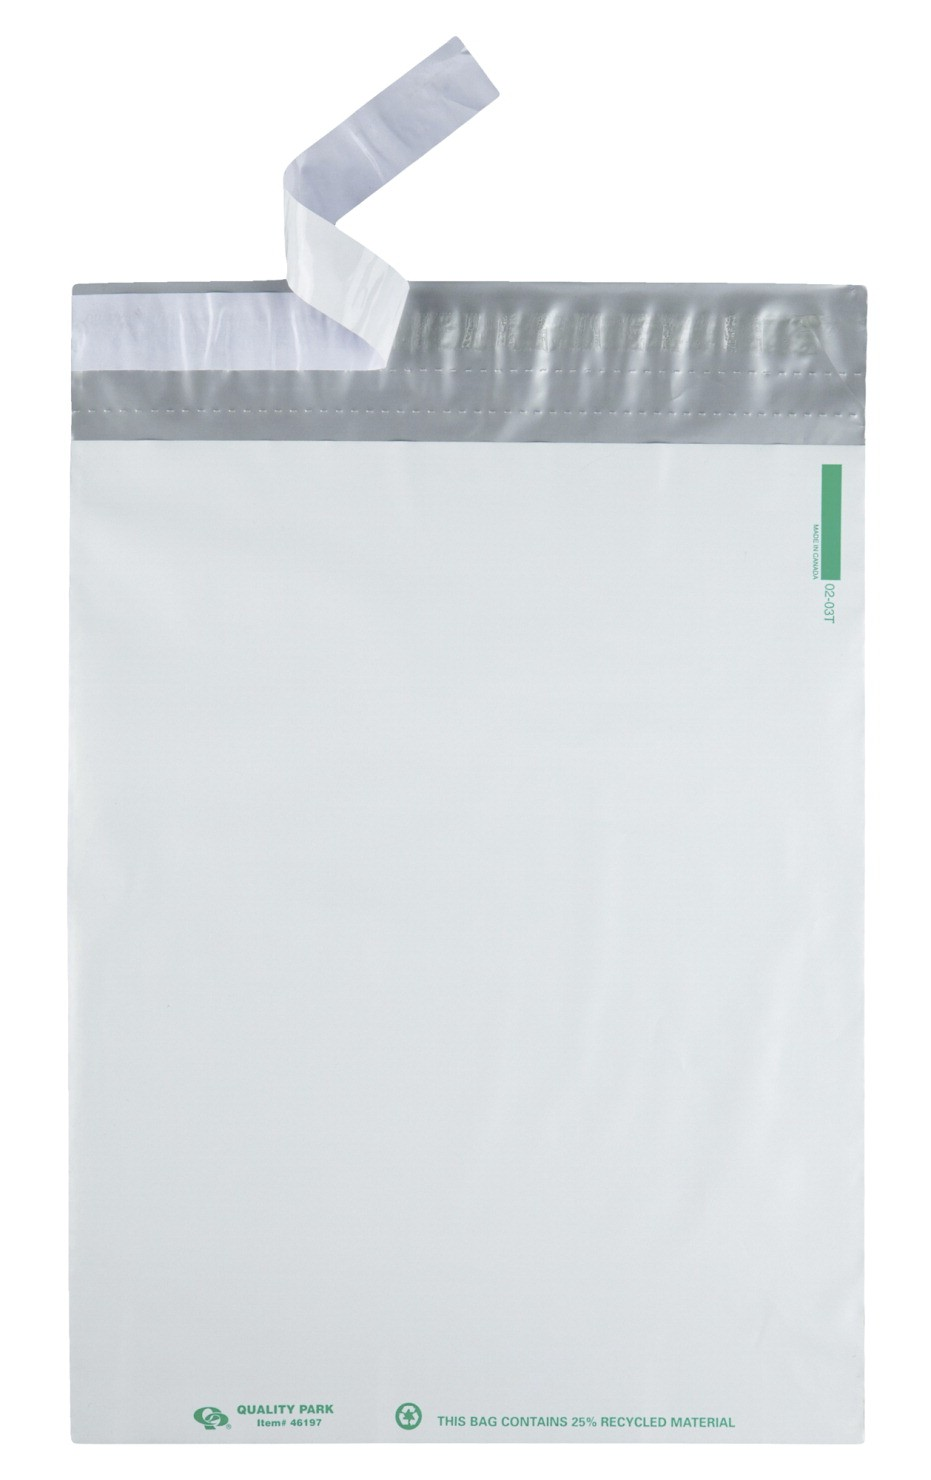 10 X 13 Plastic Mailing Envelopes, Double Perforation, Redi-Strip Adhesive Closure, White - 100/Pkg